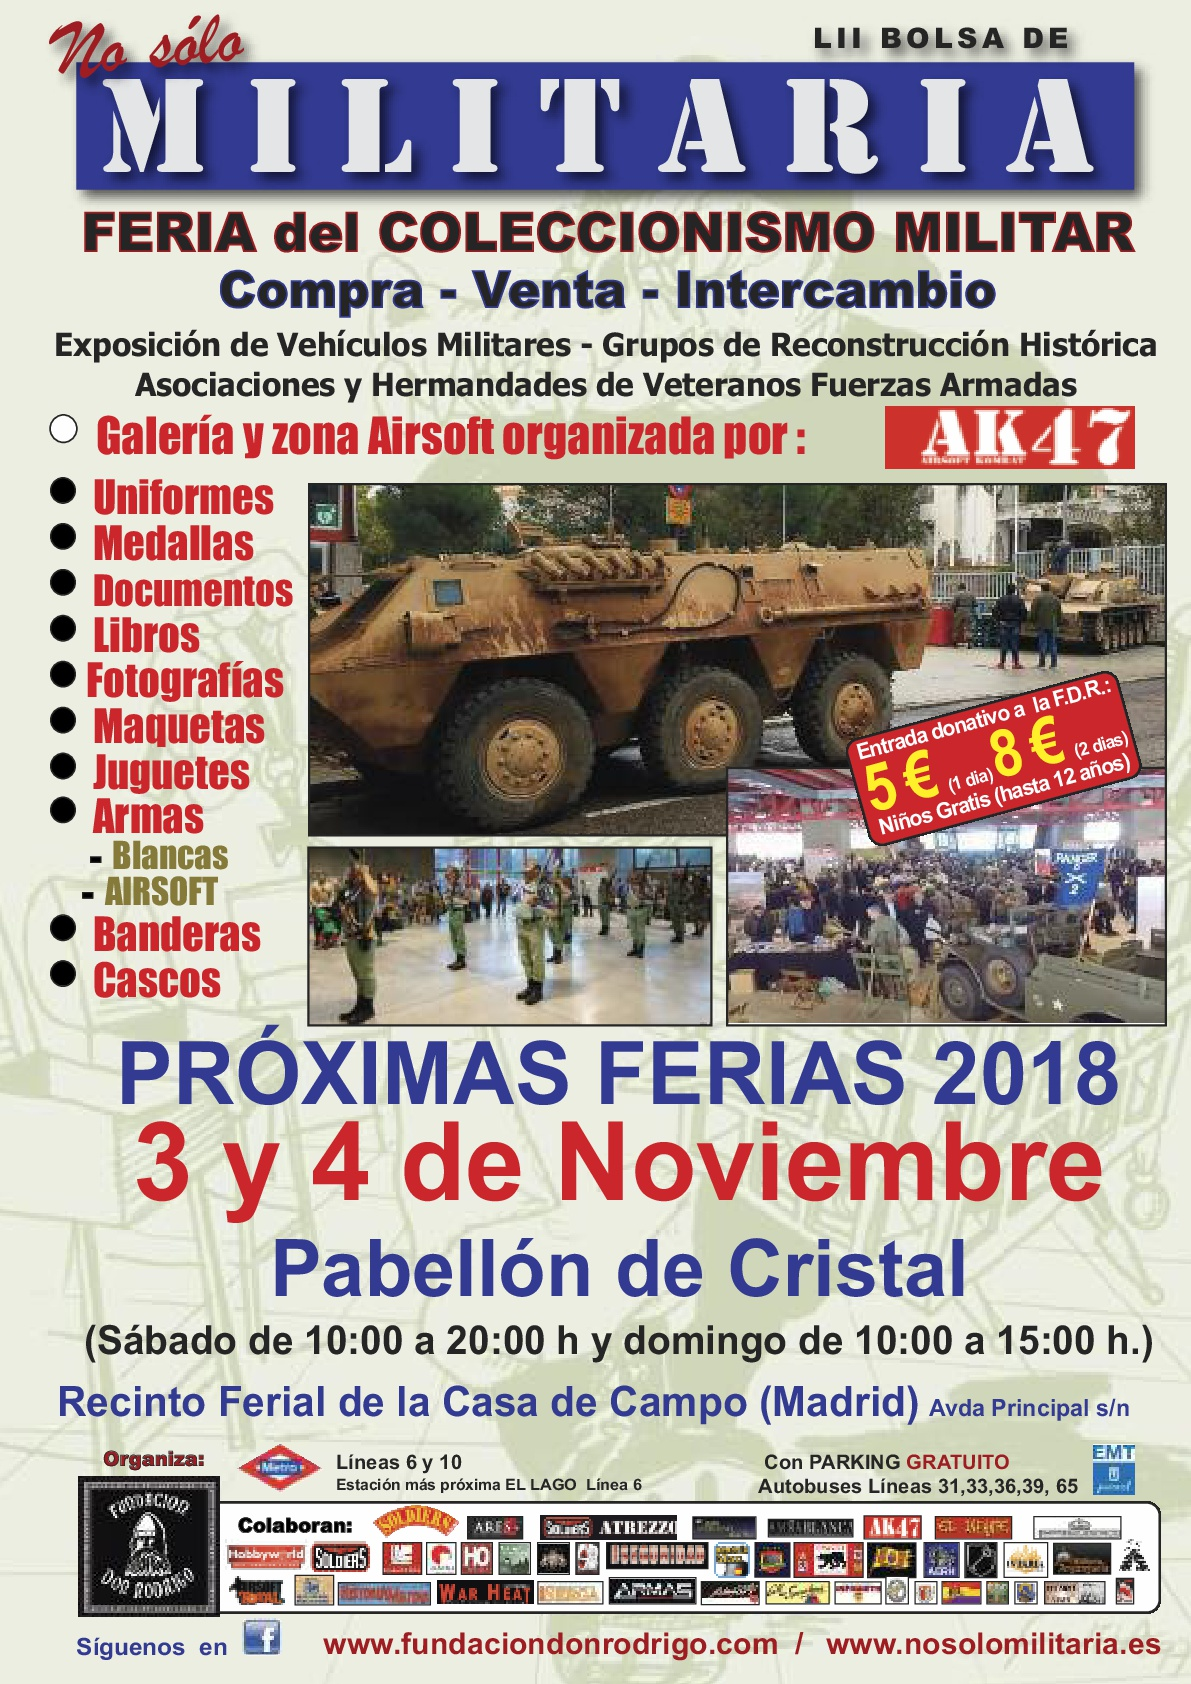 We're preparing our participation in the next Military Fair in Madrid NO SOLO MILITARIA